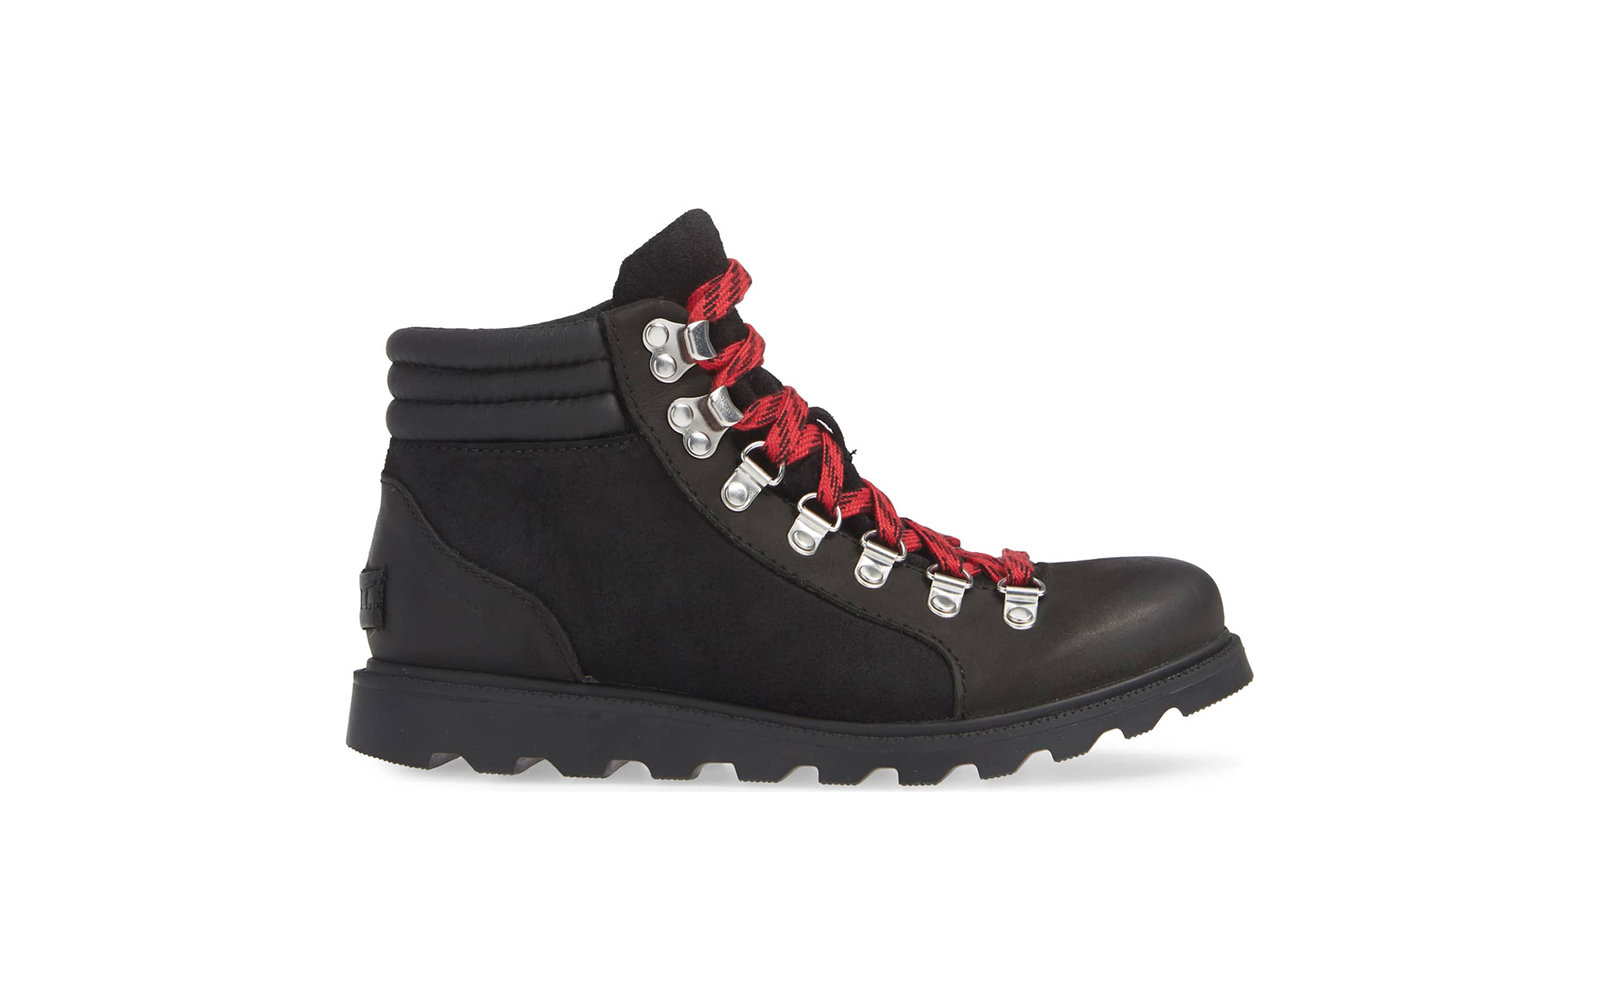 Best Winter Boots: Sorel Ainsley Conquest Waterproof Boot